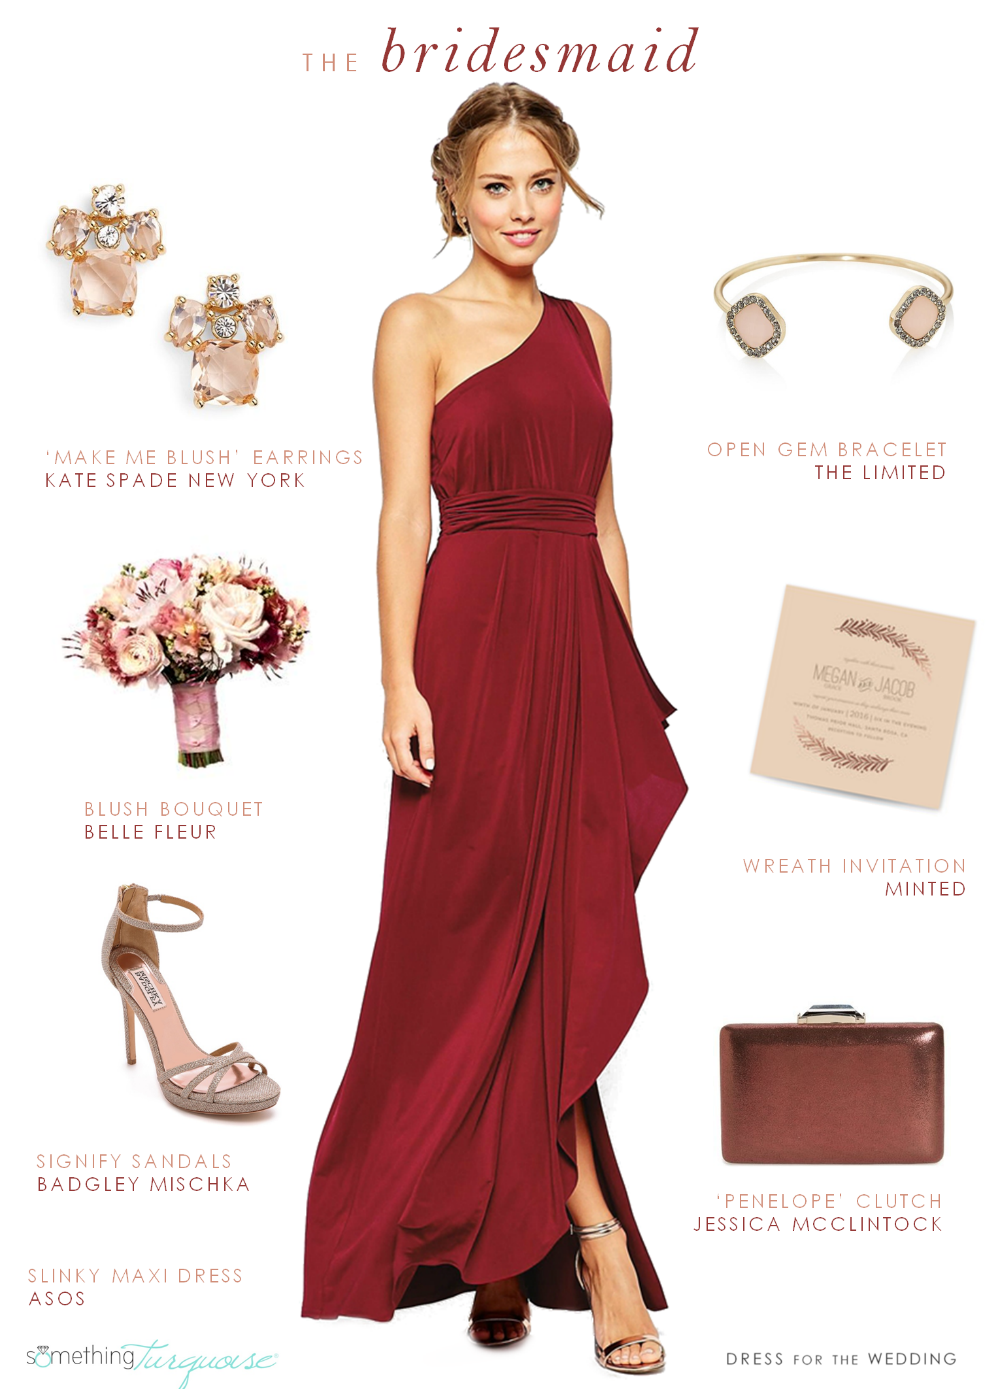 472b5e1c55d Burgundy red bridesmaid by Dress for the Wedding for Something Turquoise